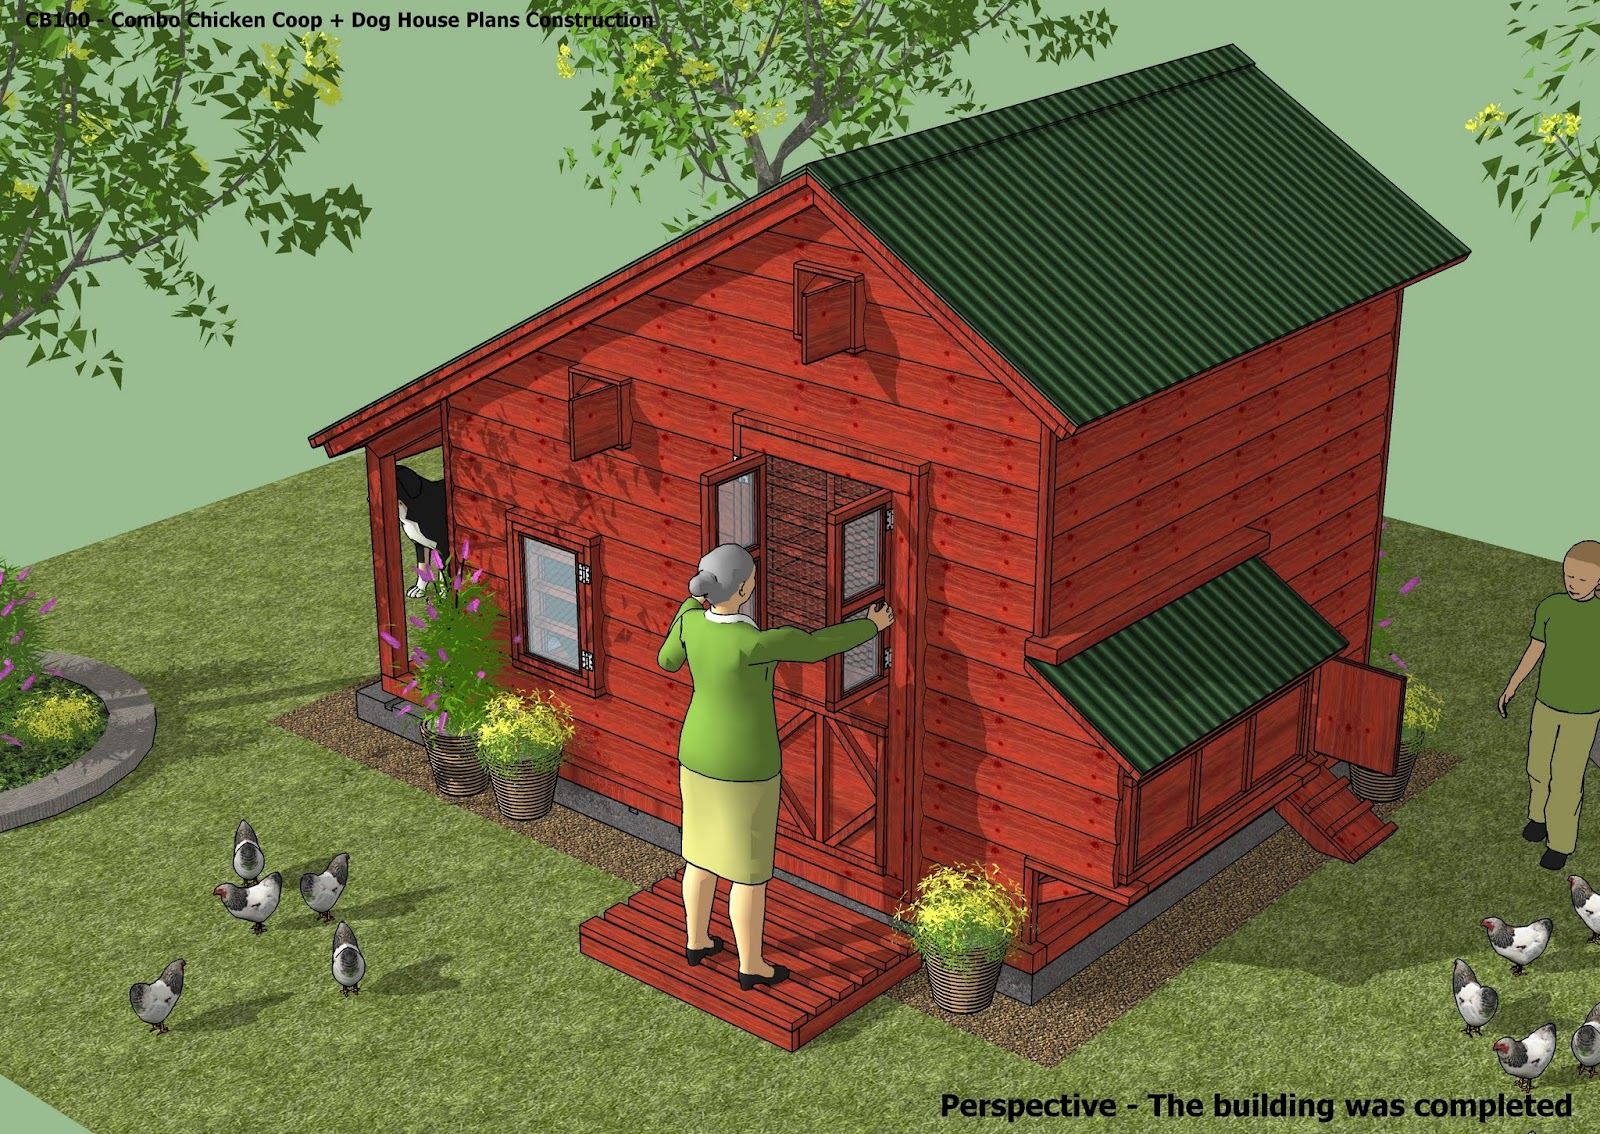 Home garden plans cb100 combo plans chicken coop for Homegardendesignplan